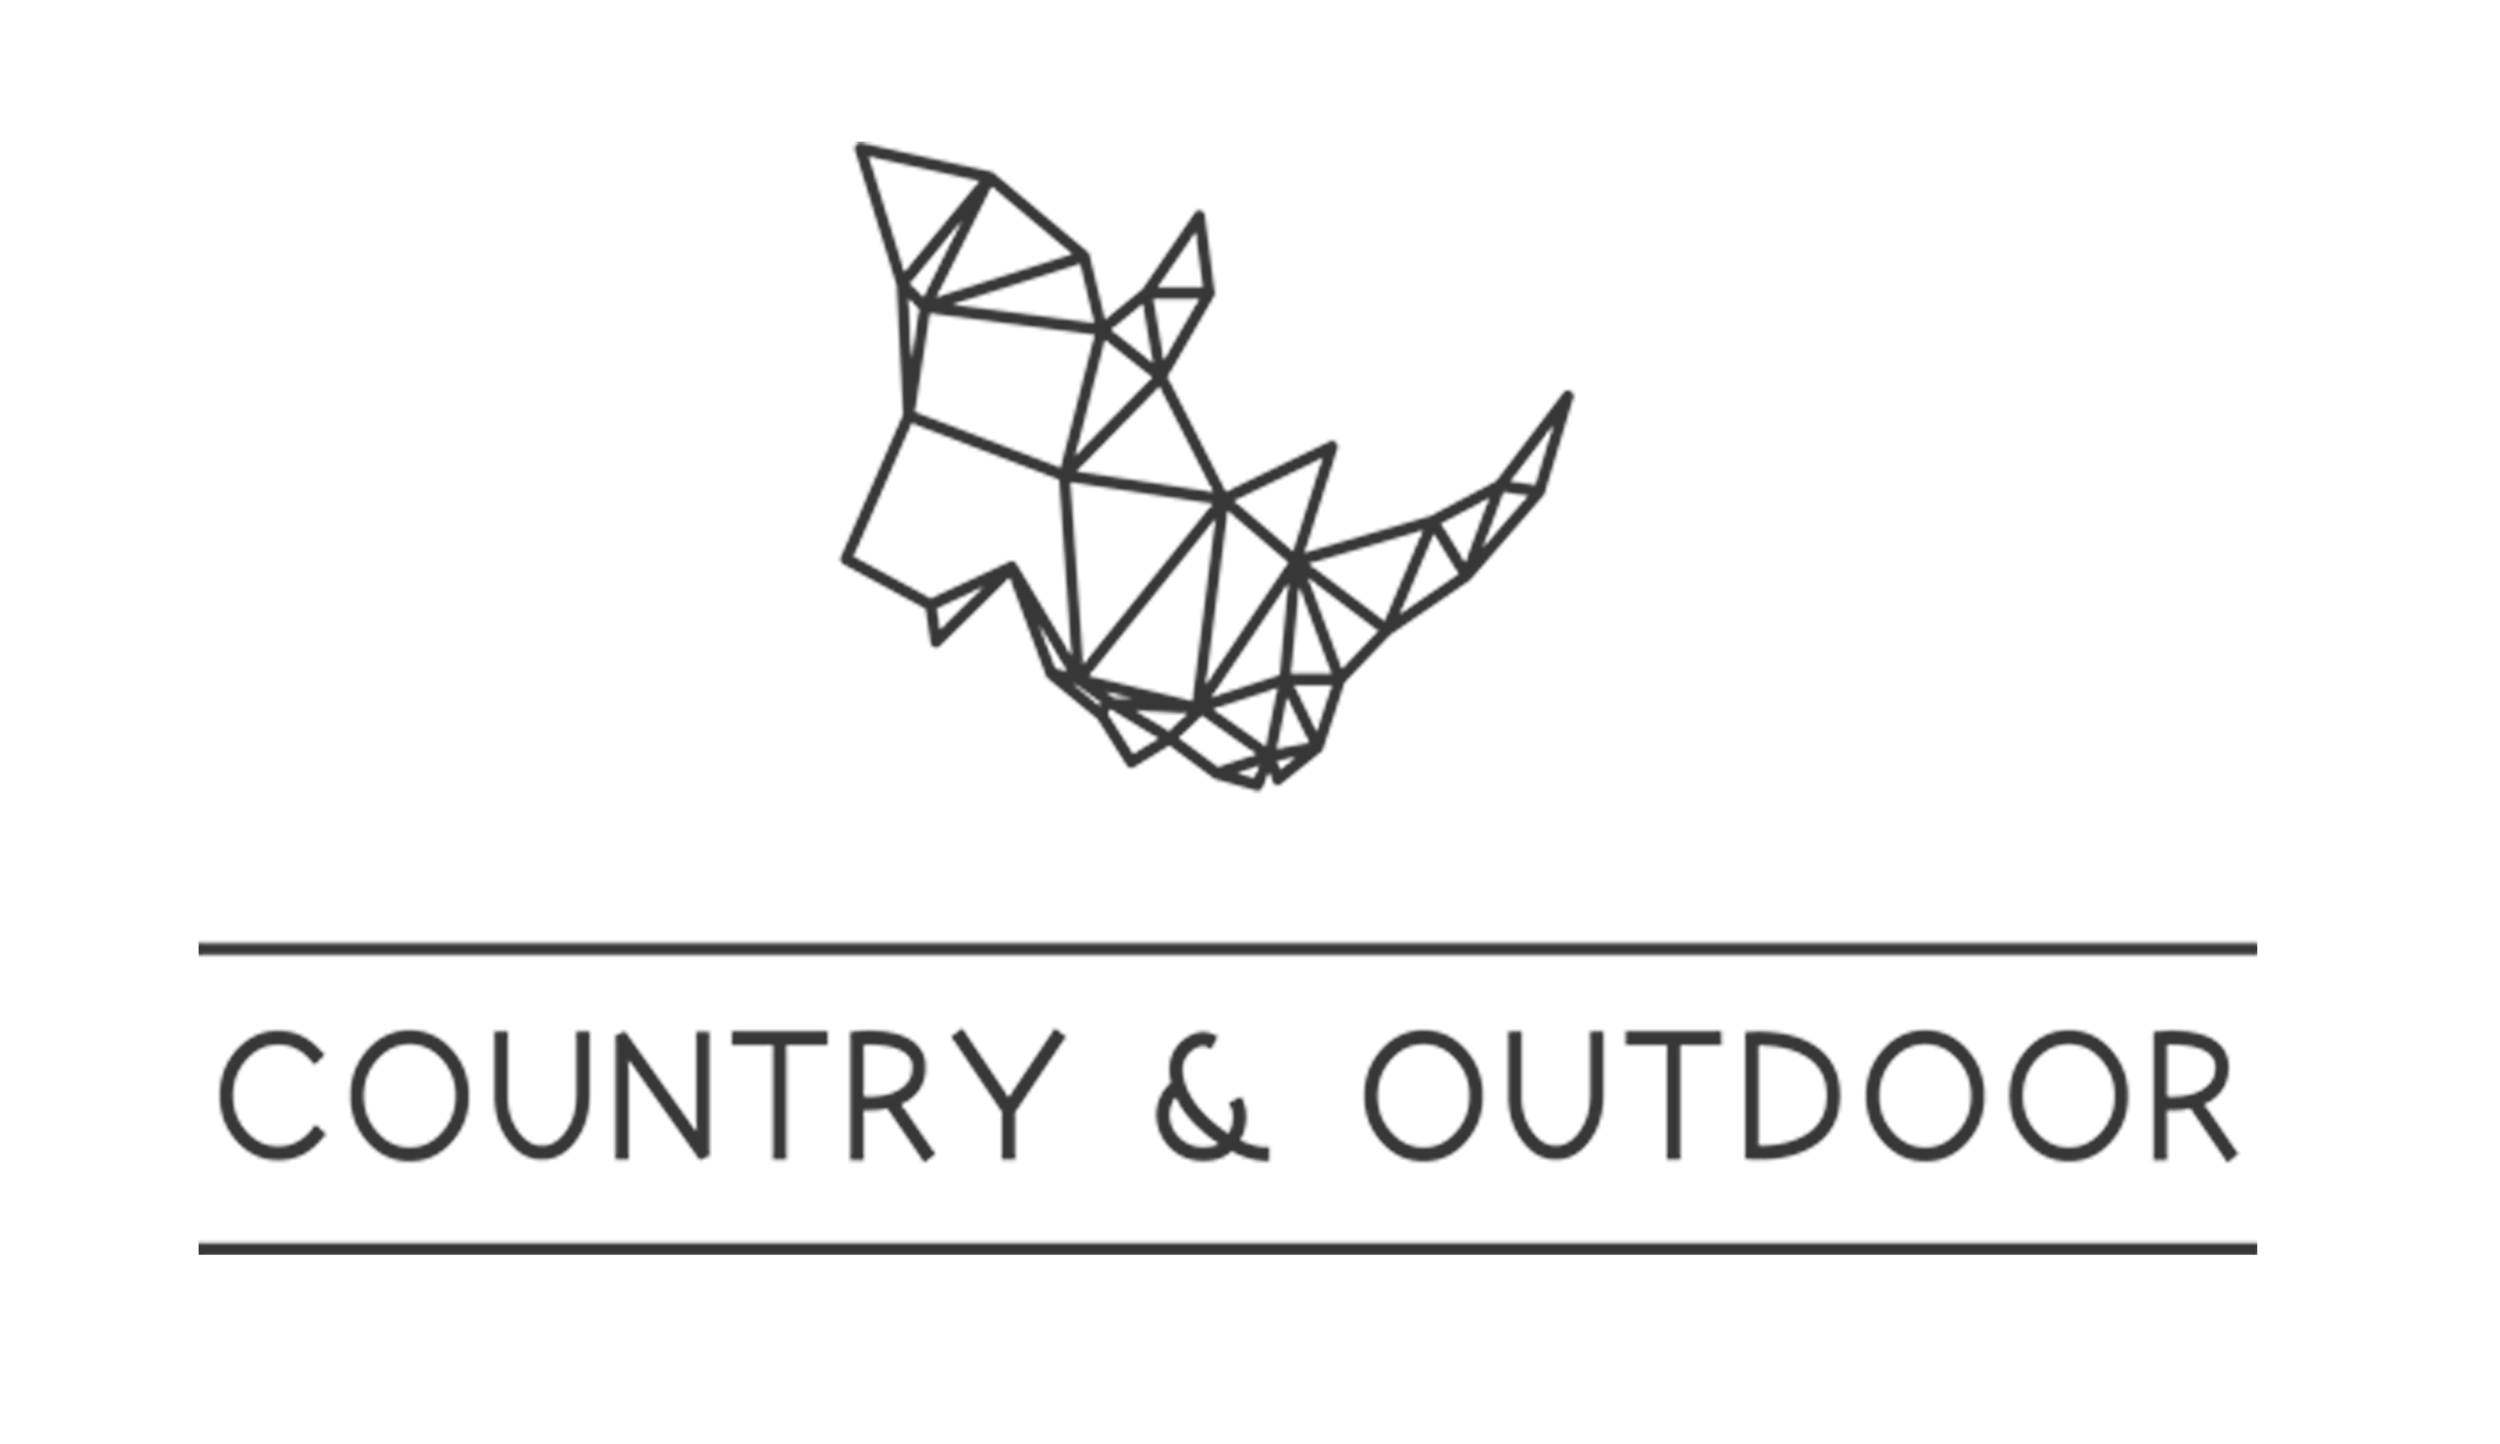 country & outdoor.png